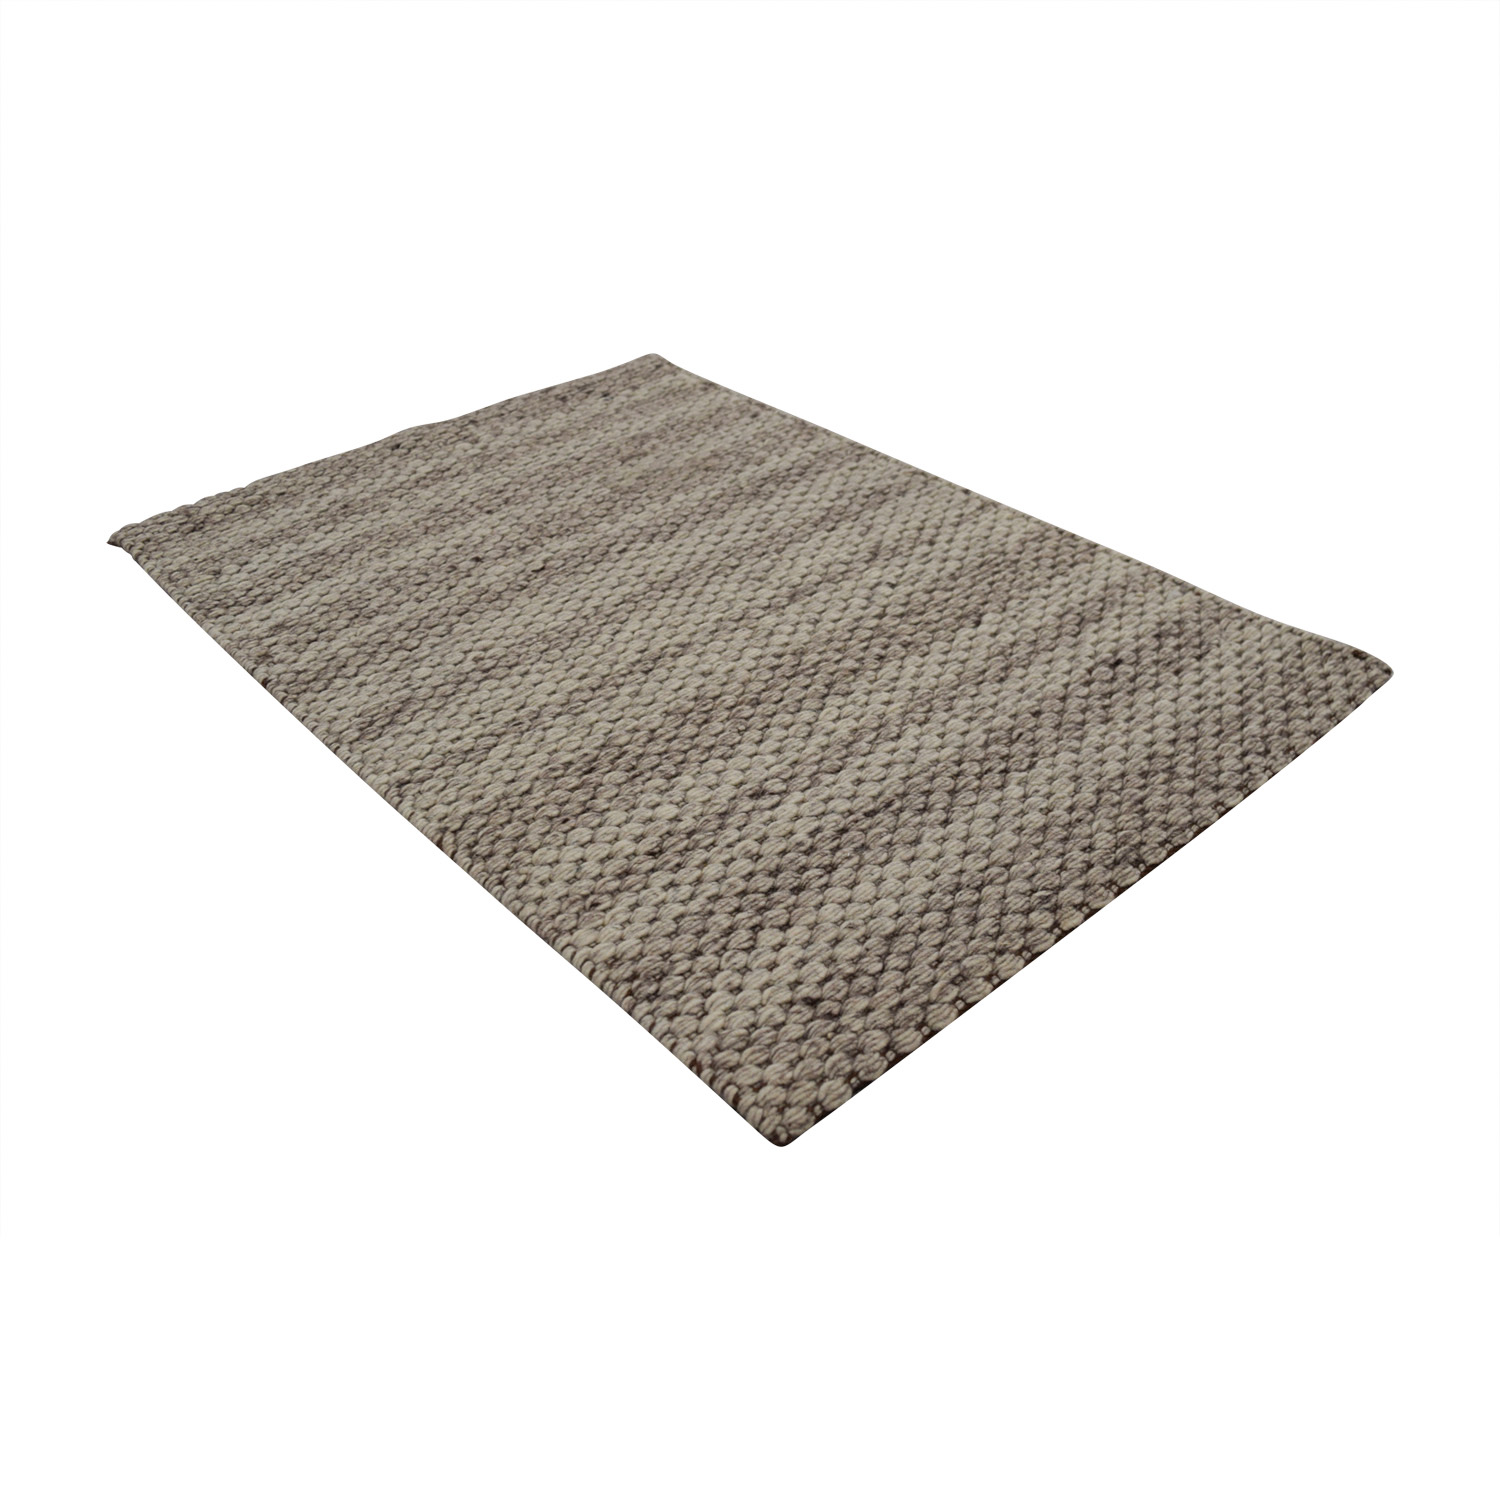 Obeetee Obeetee Tan and Beige Wool Rug Rugs